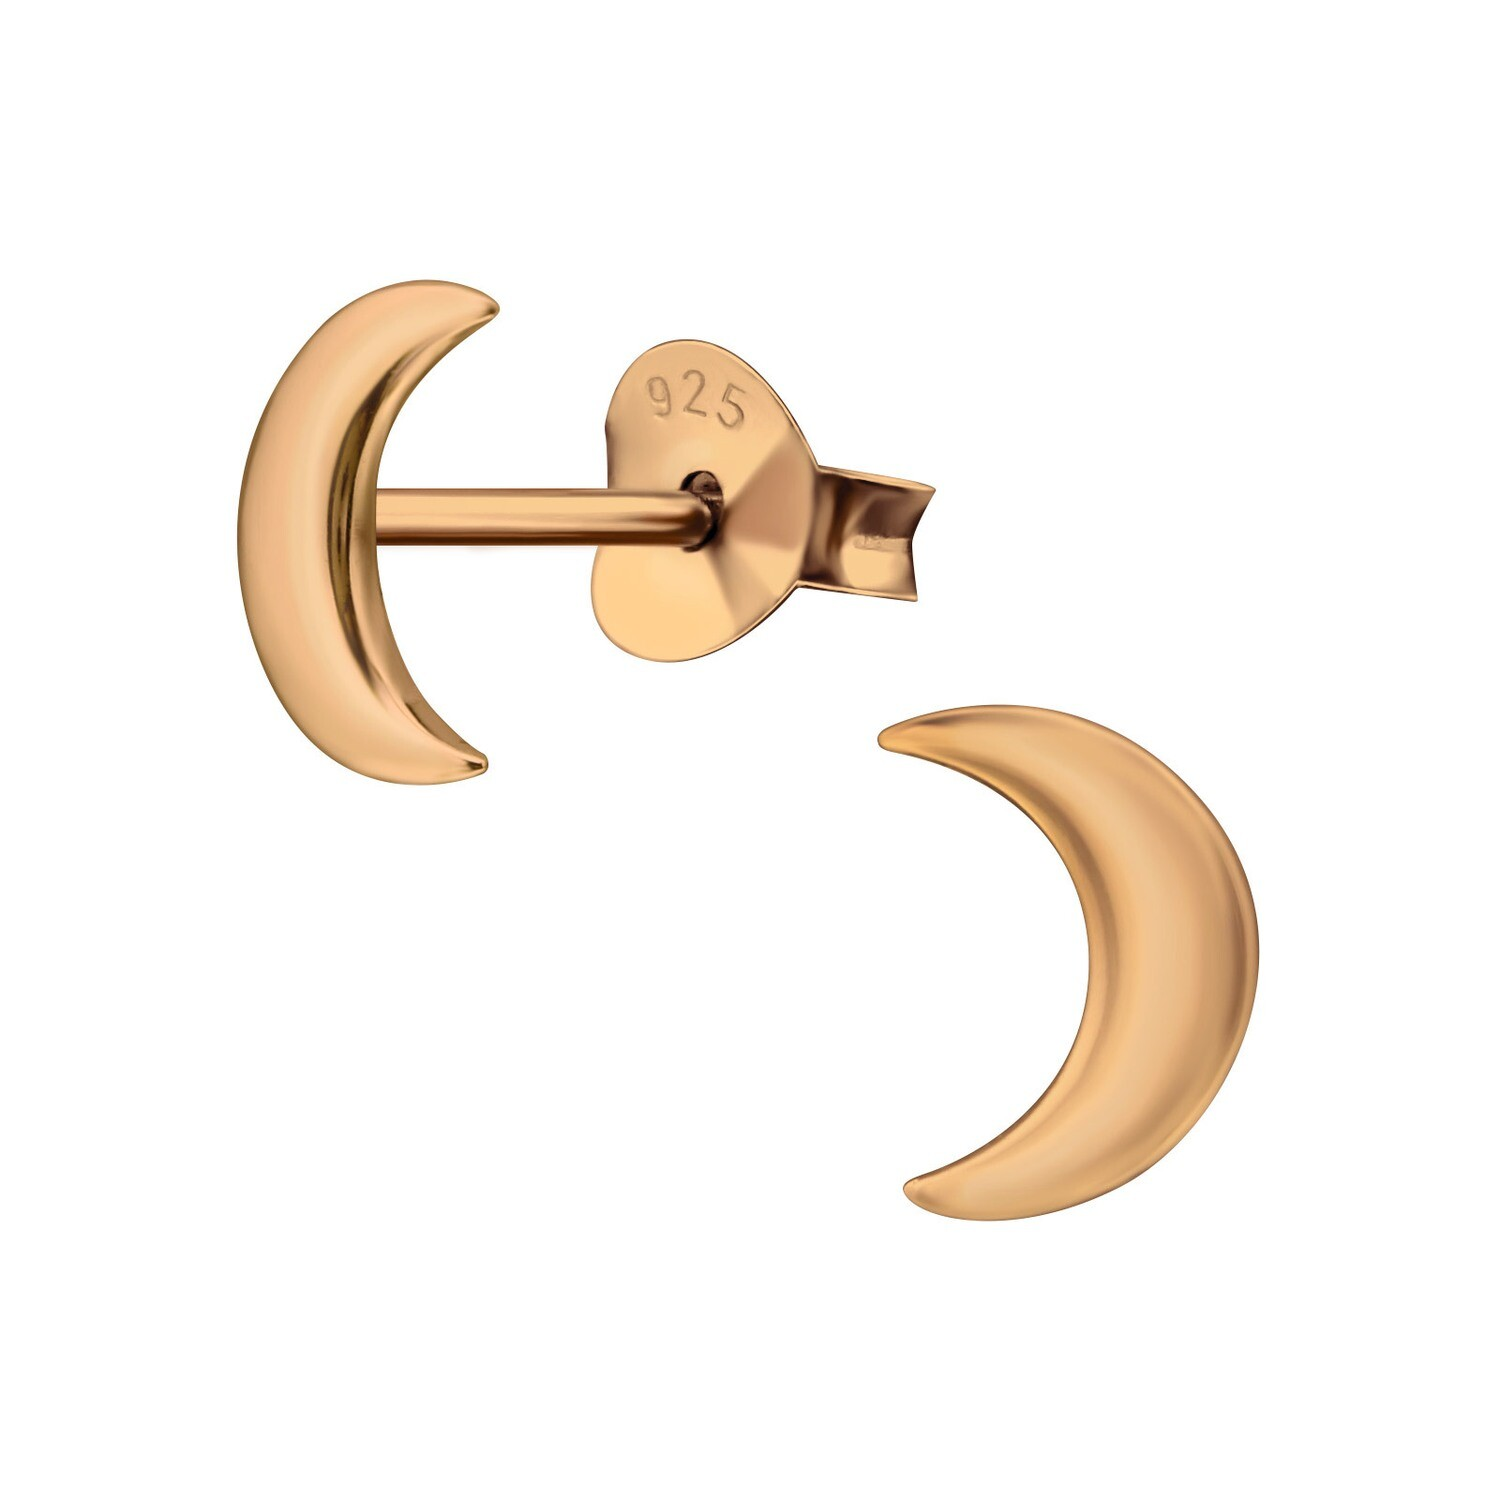 P41-9 Crescent Moon Posts - Rose Gold Plated Sterling Silver